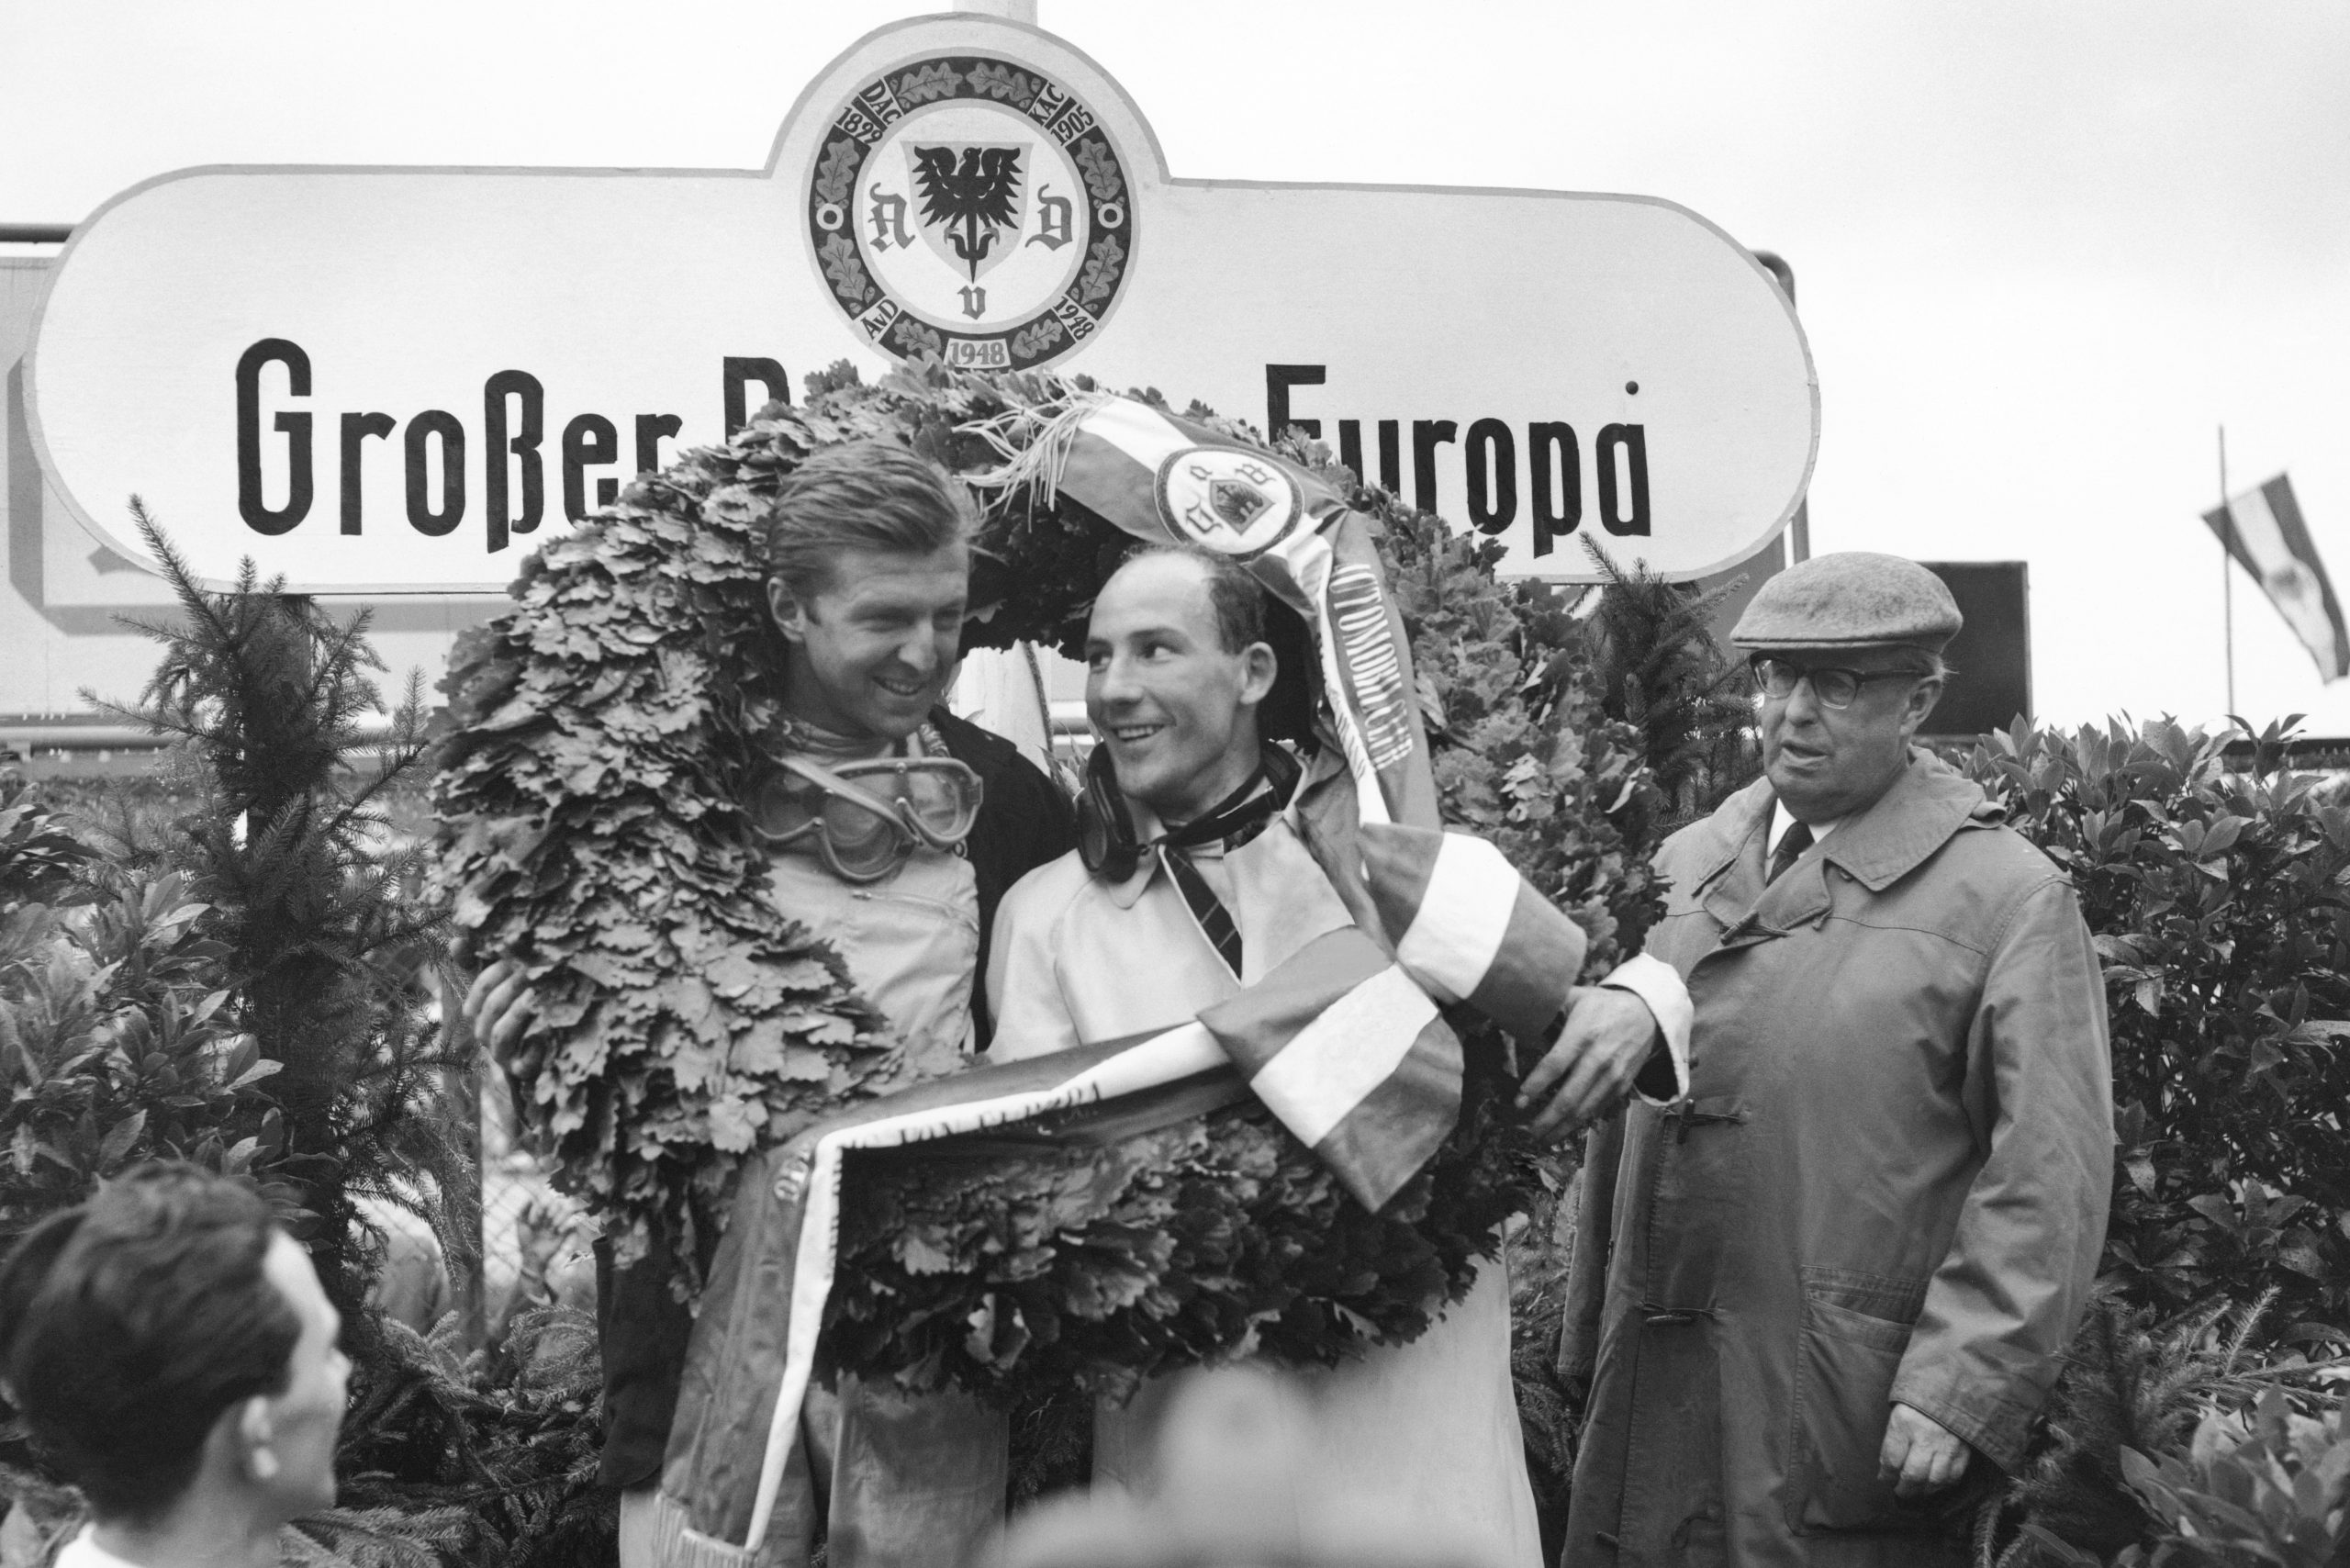 Wolfgang von Trips (Ferrari Dino 156) and Stirling Moss (Lotus 18/21-Climax) celebrate on the podium.